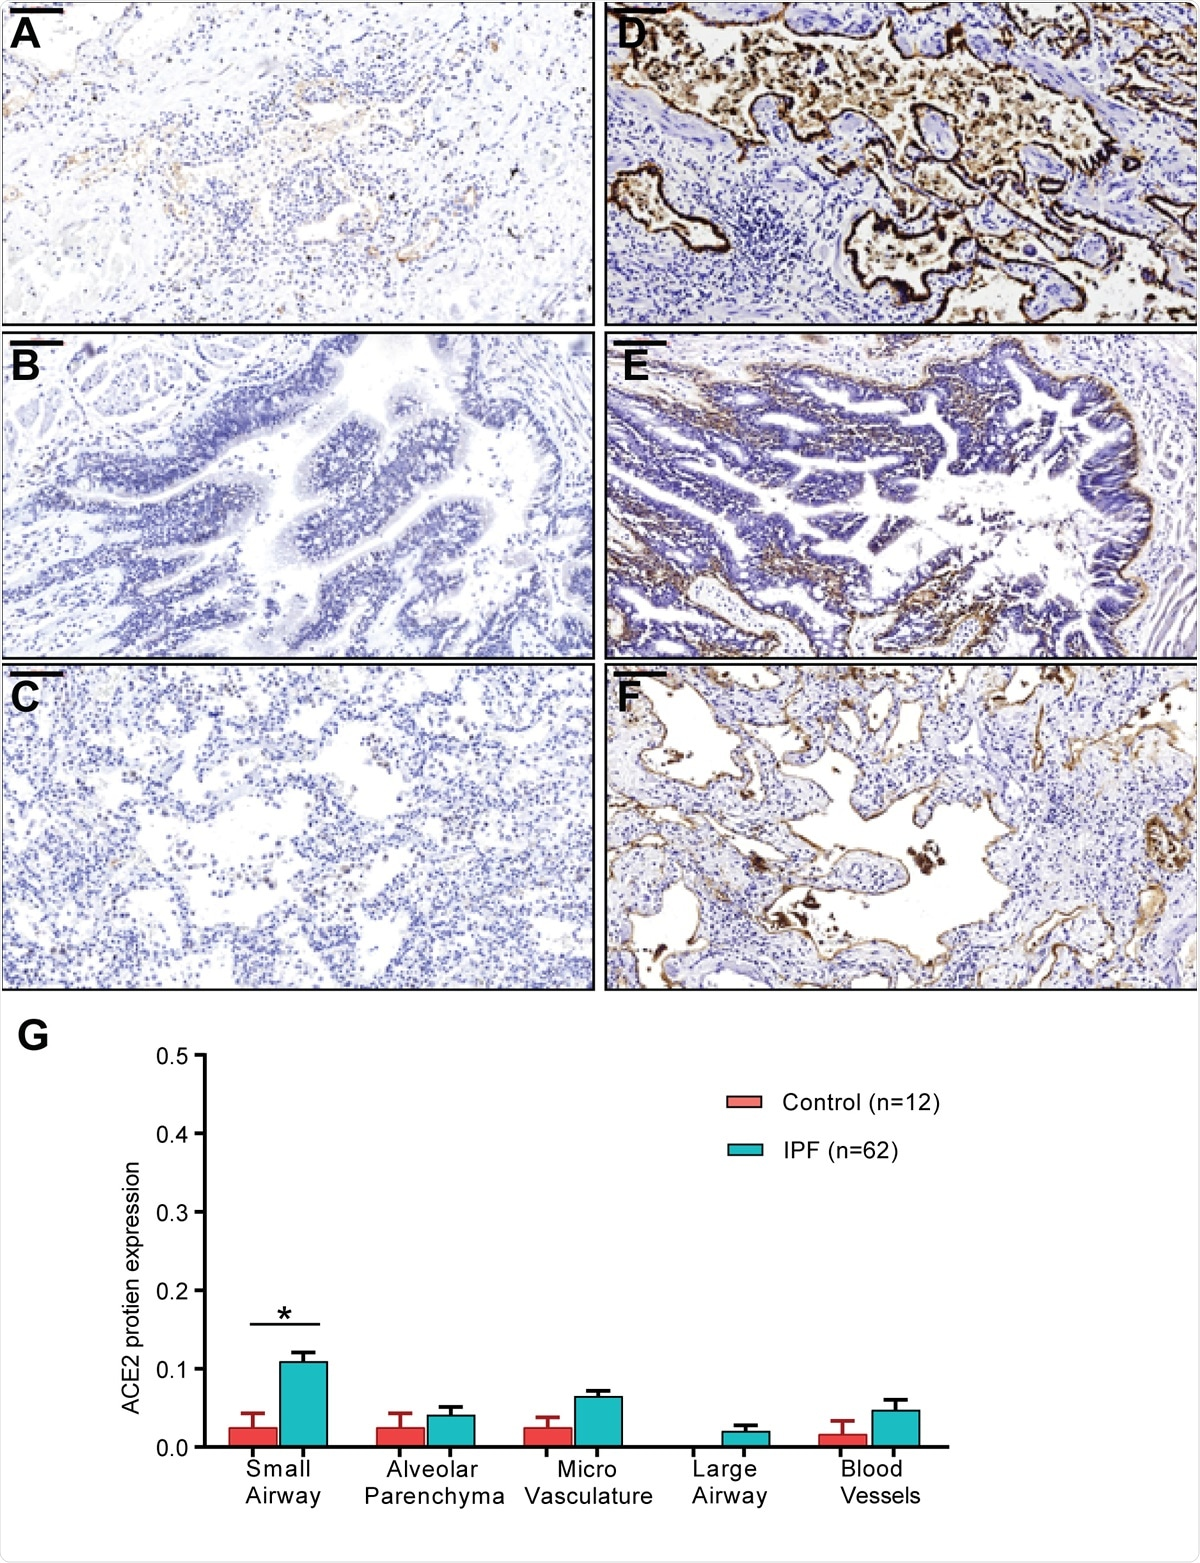 ACE2 and ITGB6 protein expression in IPF lung sections. (A-C) IPF lung sections stained for ACE2: (A) small airway, (B) large airway and (C) lung parenchyma. (D-F): IPF lung sections stained for αvβ6: (D) small airway, (E) large airway and (F) lung parenchyma. (G) semi-quantitative evaluation of ACE2 scoring among control and IPF sections (both the percentage of staining and staining intensity of ACE2 expression;0-Negative; 1-0–⩽10%; 2-11–⩽25%; 3- ⩽26%). Significant differences between IPF and control were calculated using Tukey HSD test, p-value < 0.05 *. Scale bar = 100μm.